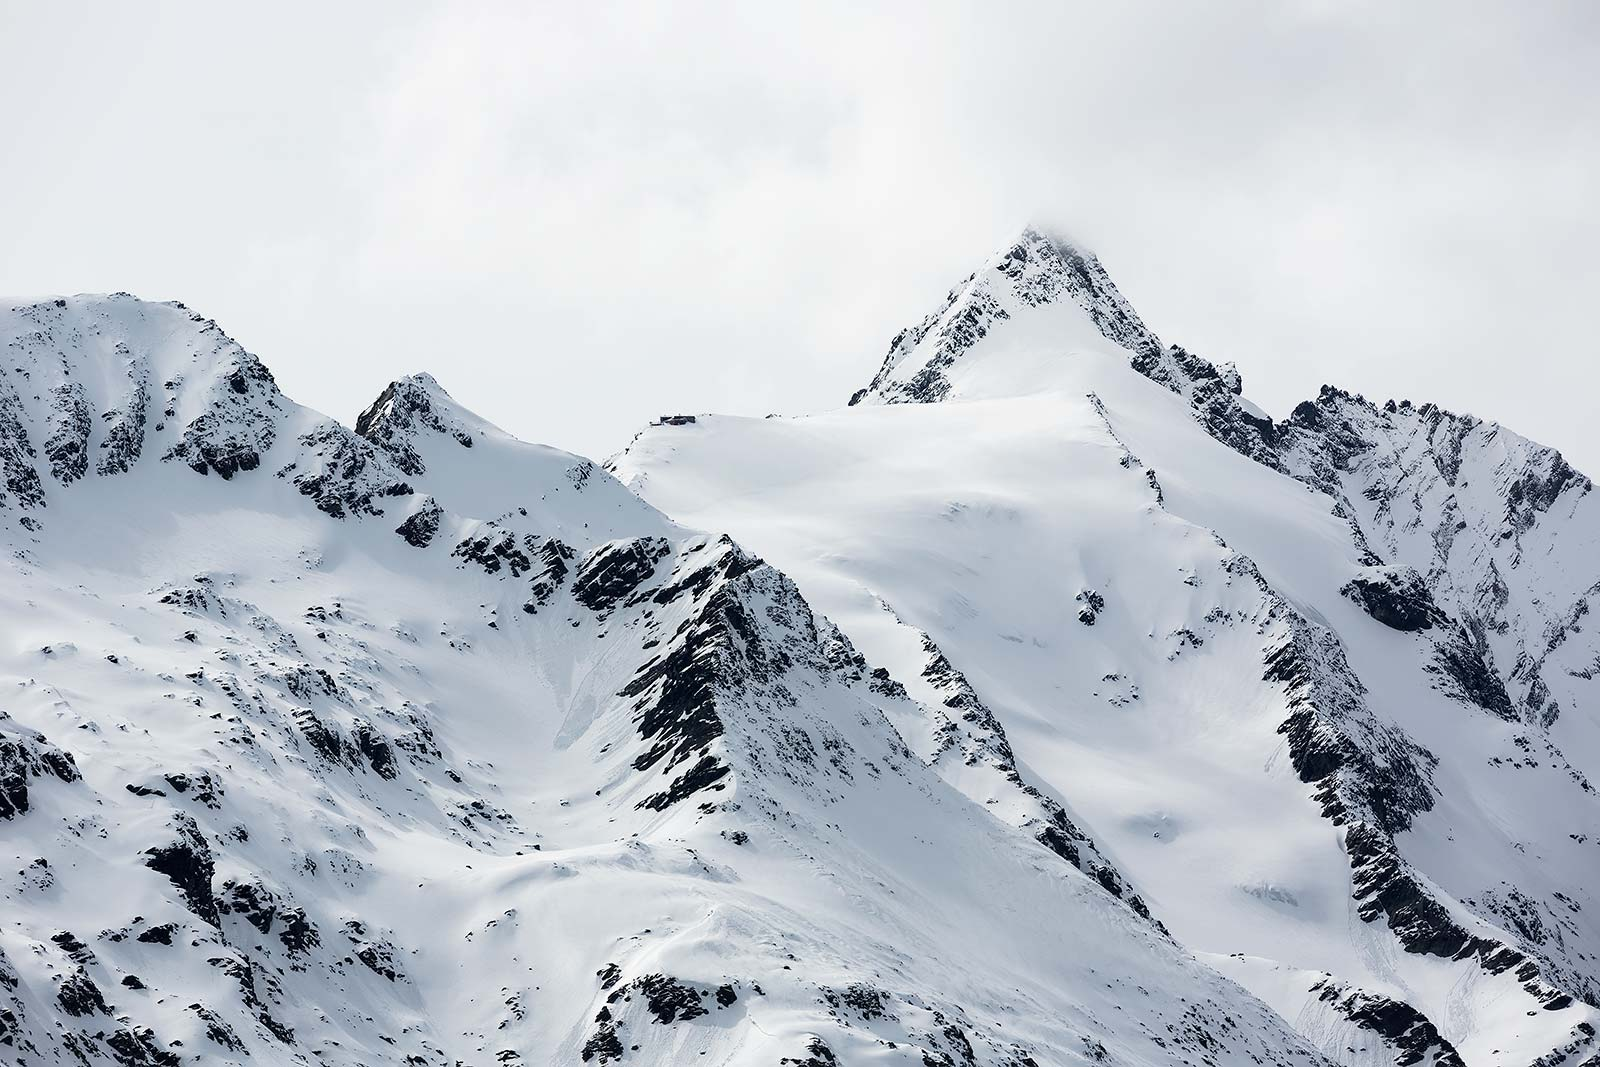 The road is named after the Grossglockner, Austria's highest mountain.